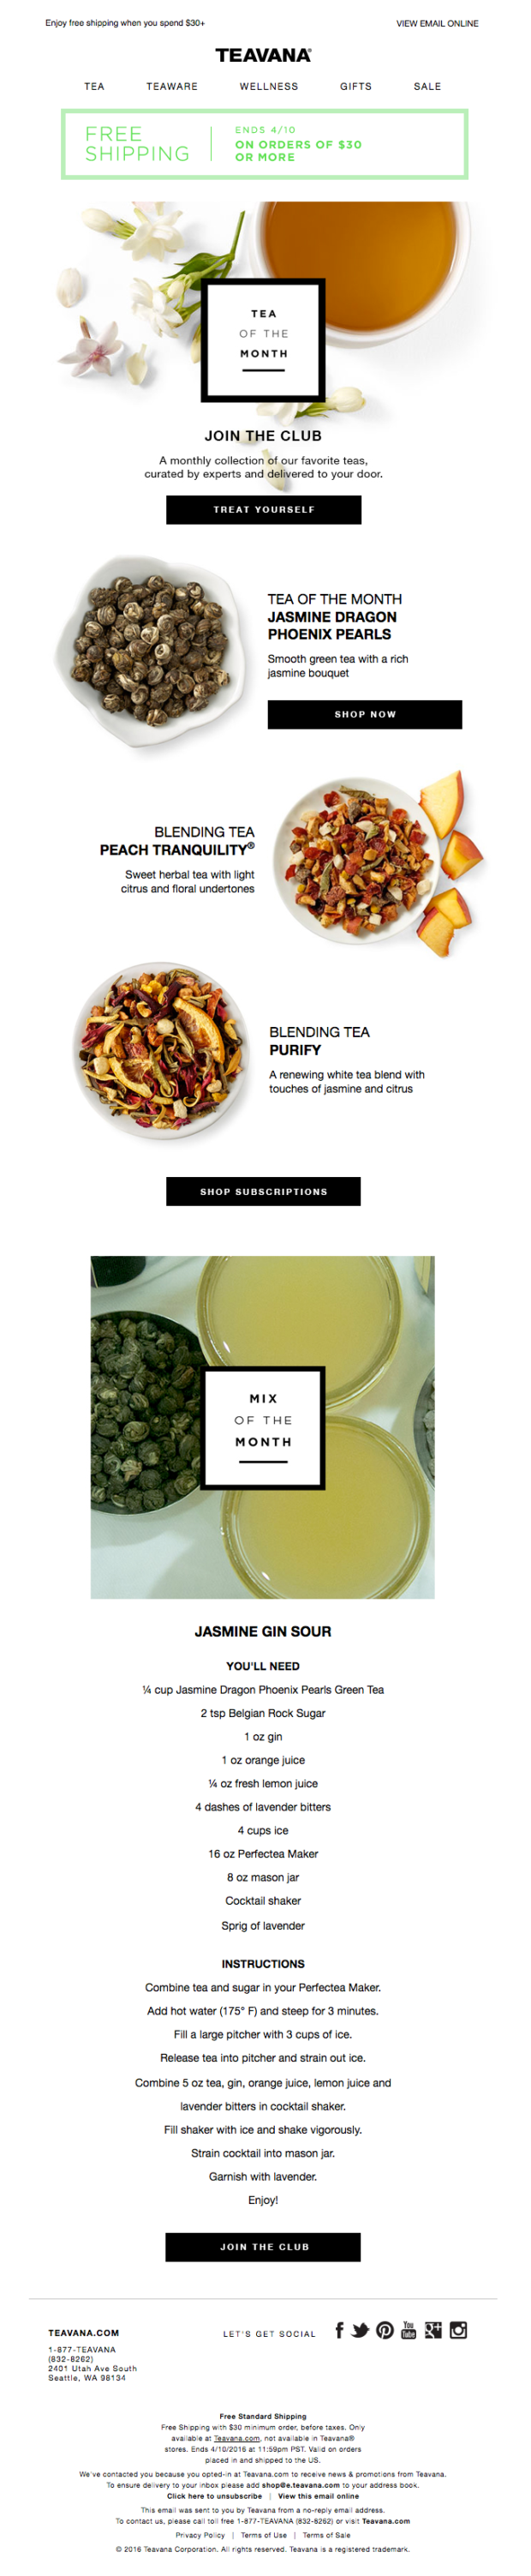 teavana-offer-email